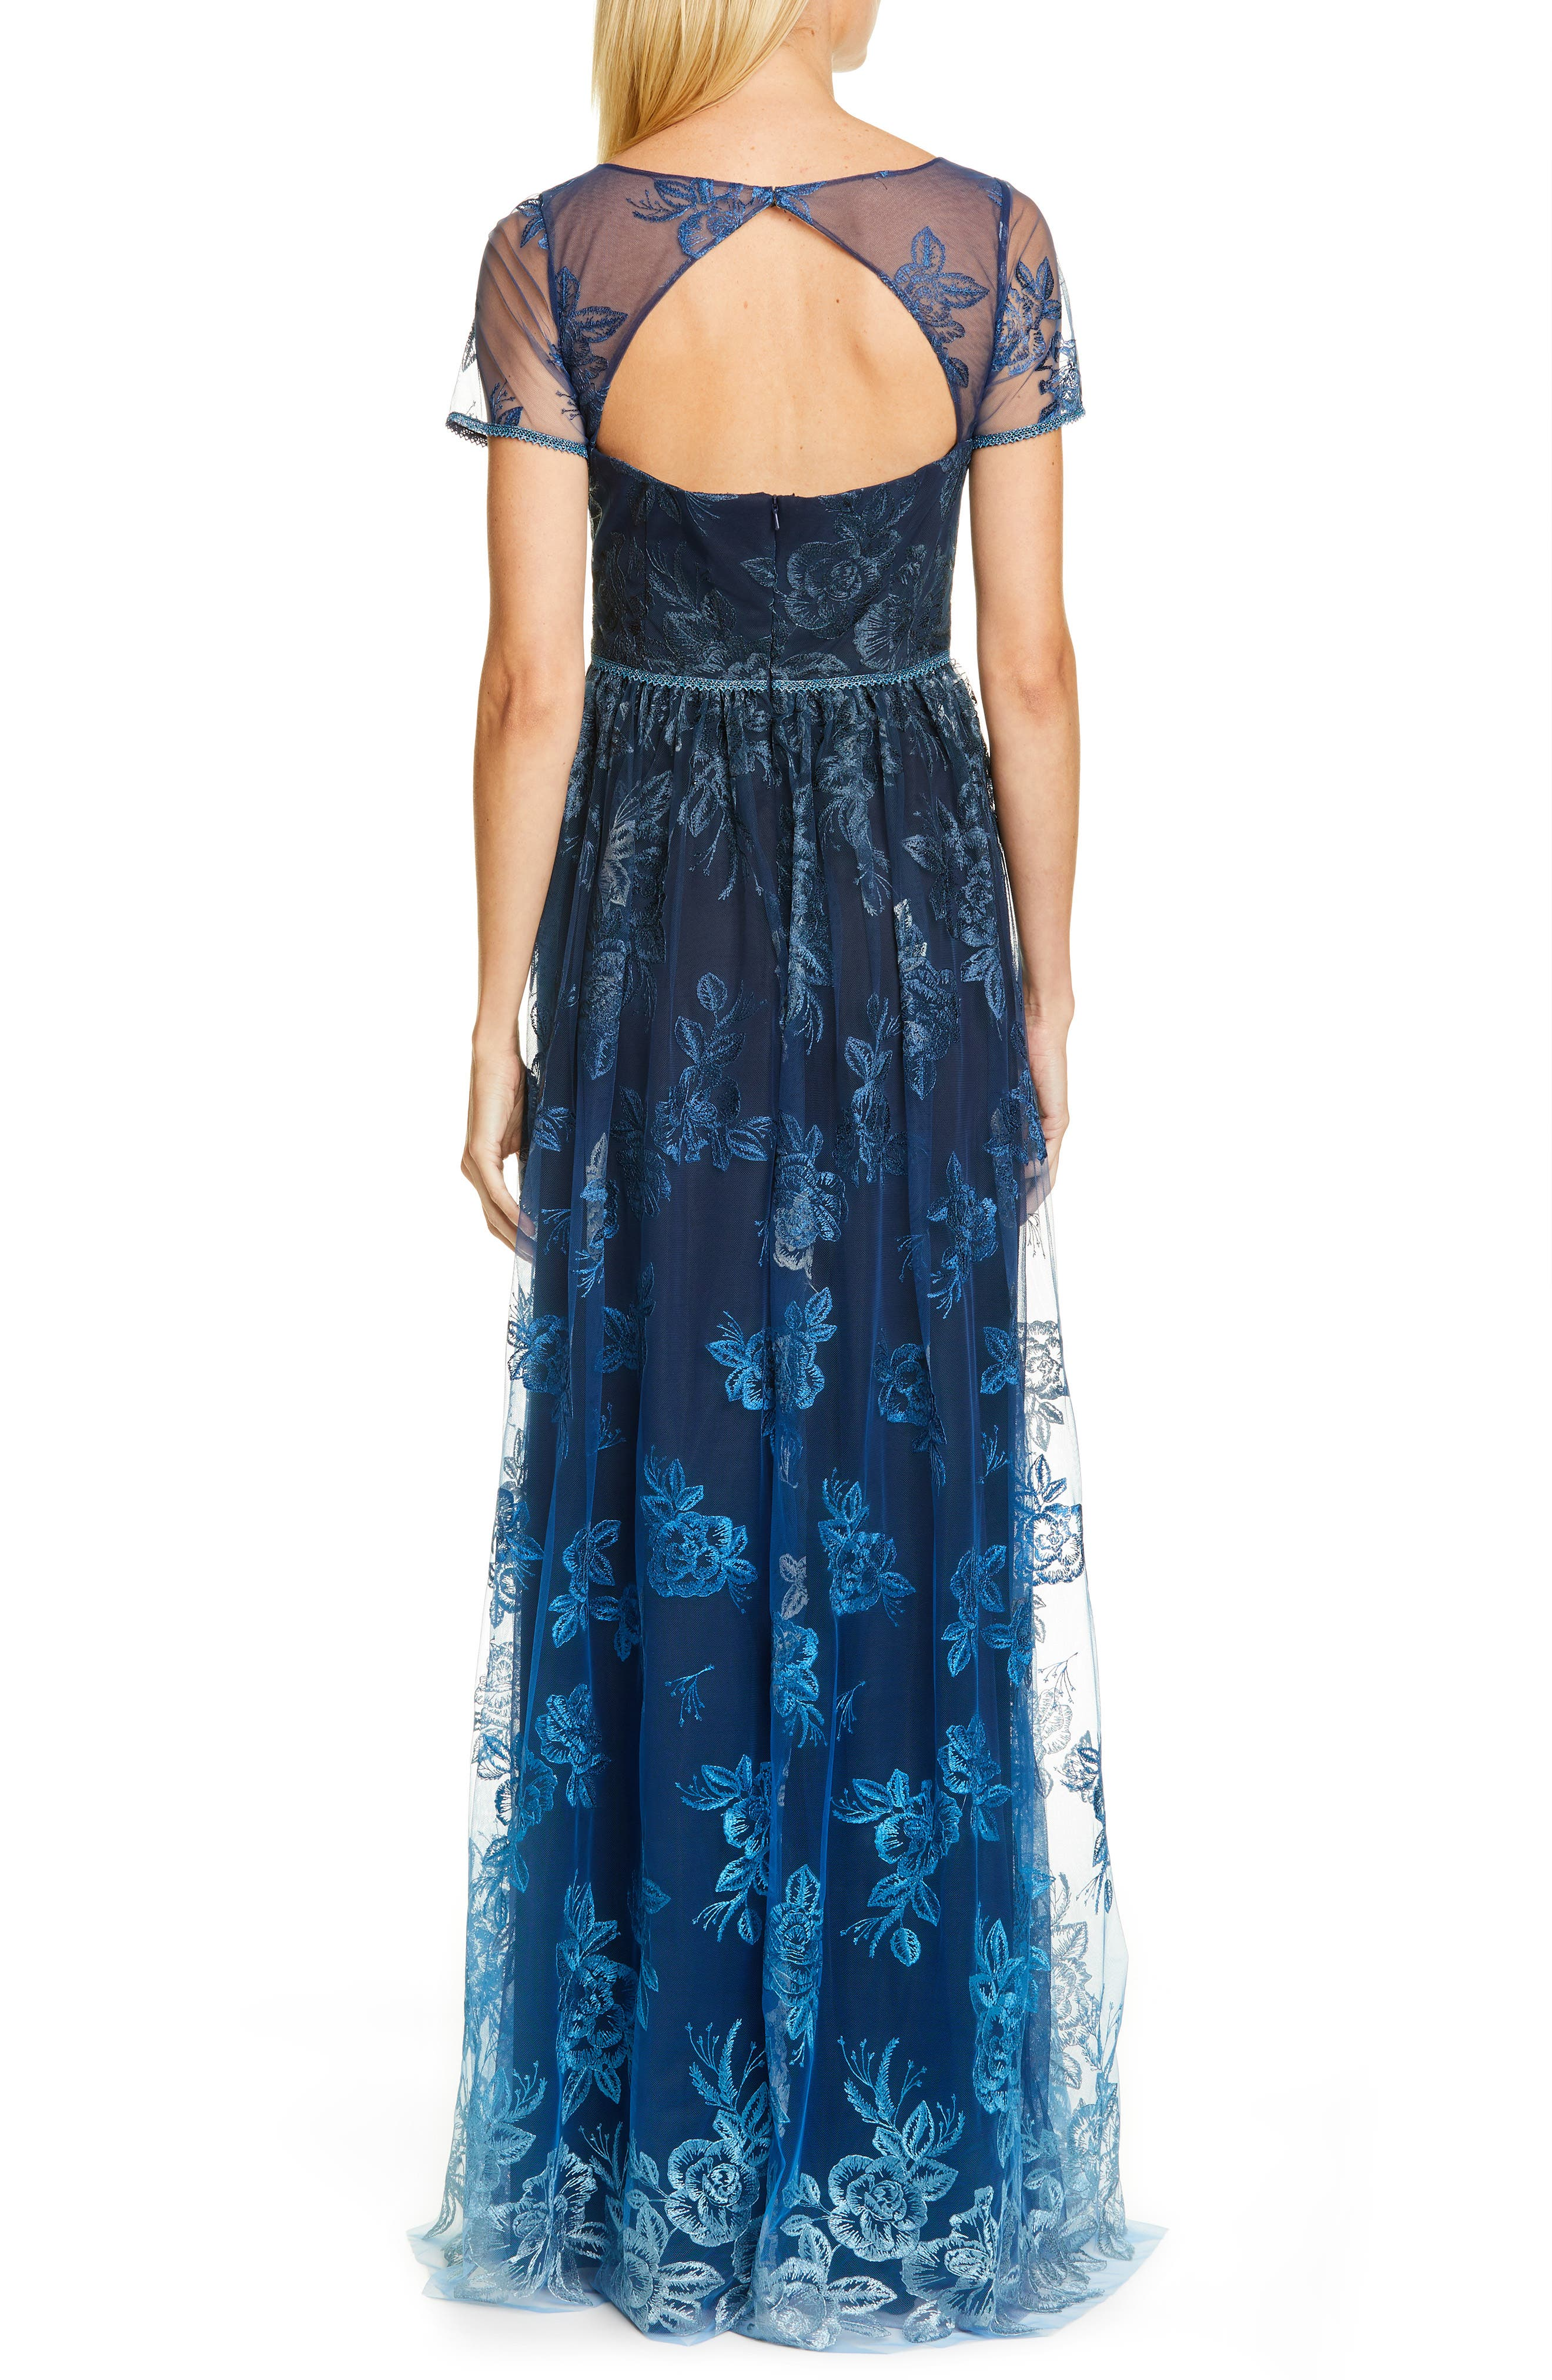 MARCHESA NOTTE, Ombré Embroidered Gown, Alternate thumbnail 2, color, NAVY